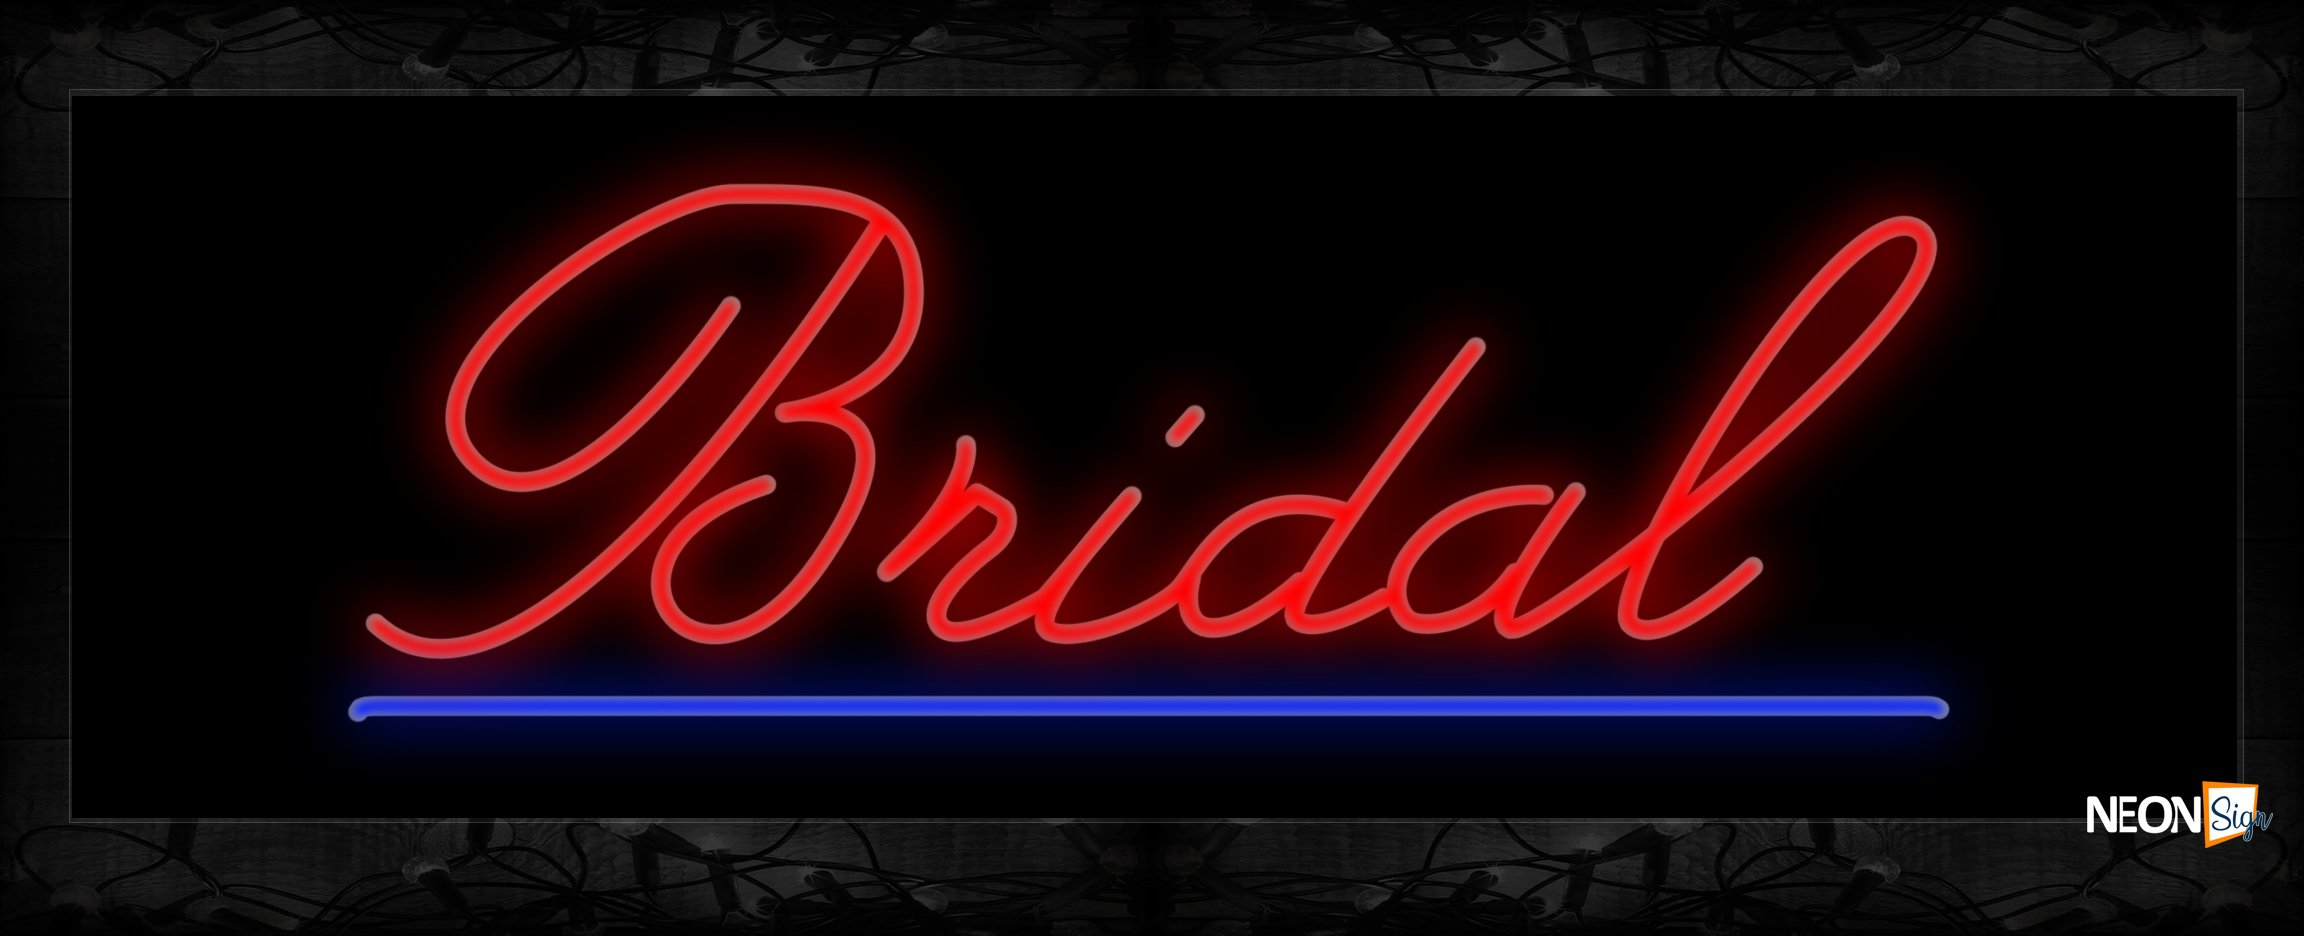 Image of 10025 Neon Sign 13x32 Black Backing